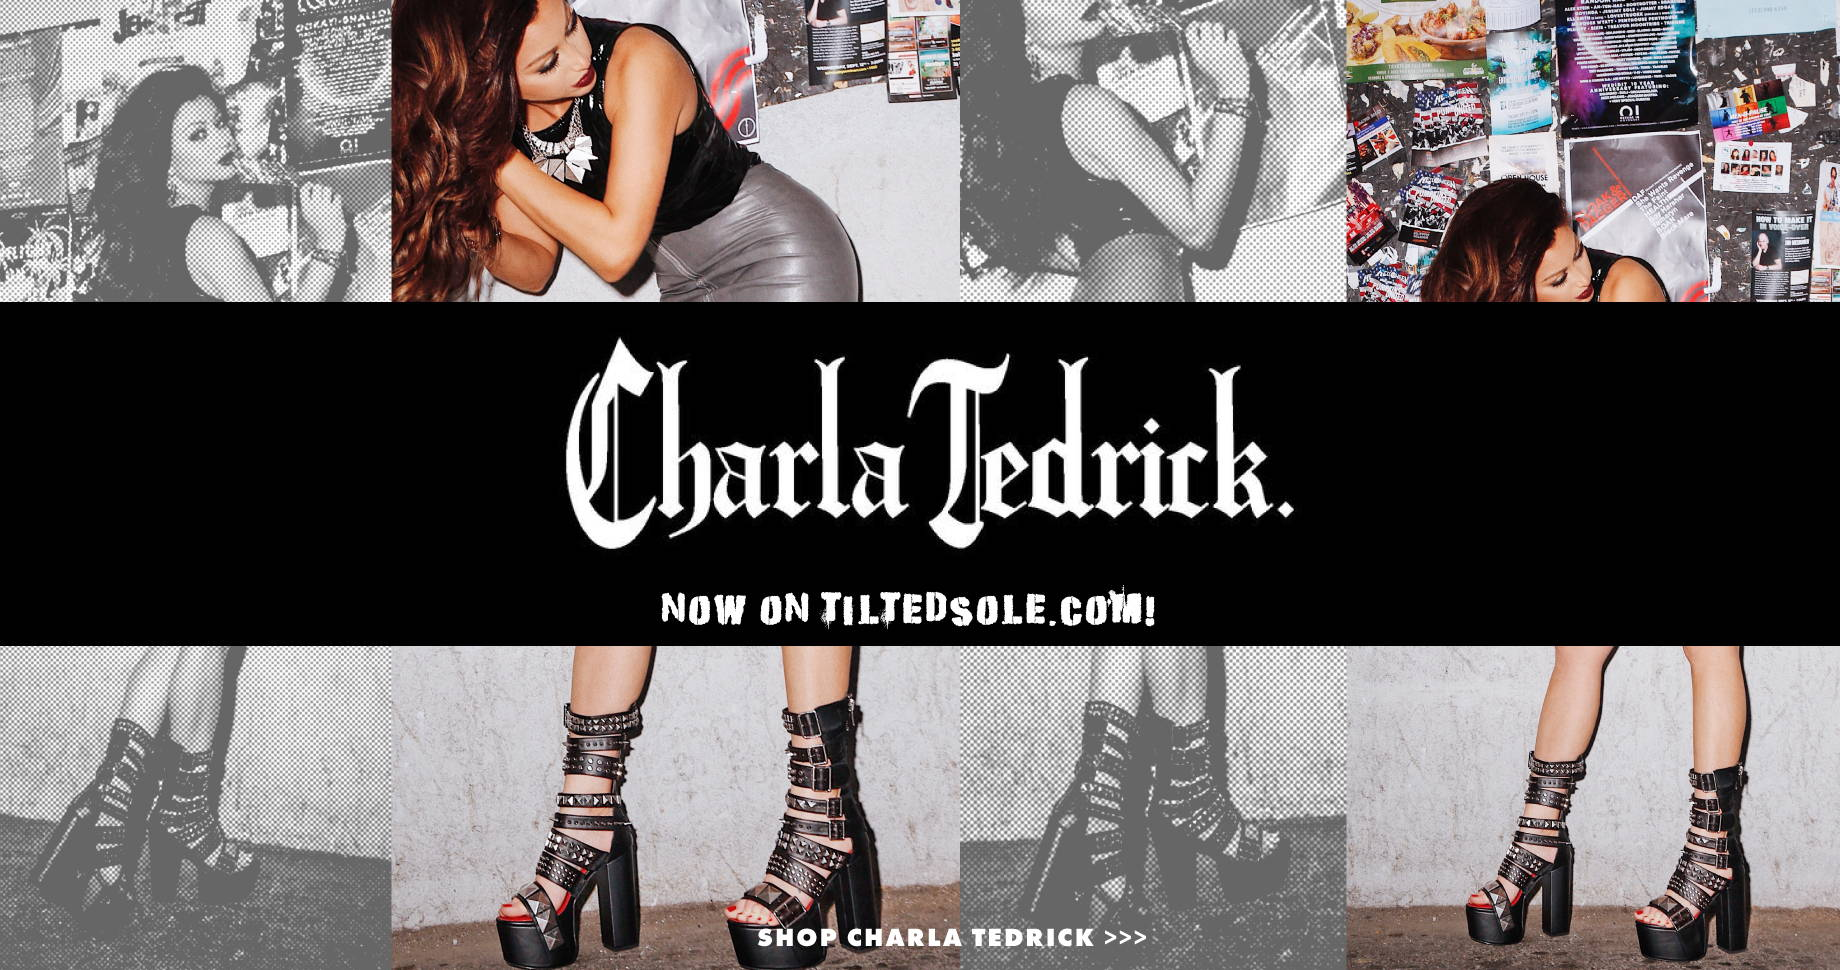 Charla Tedrick Now On Tiltedsole.com | Shop Charla Tedrick